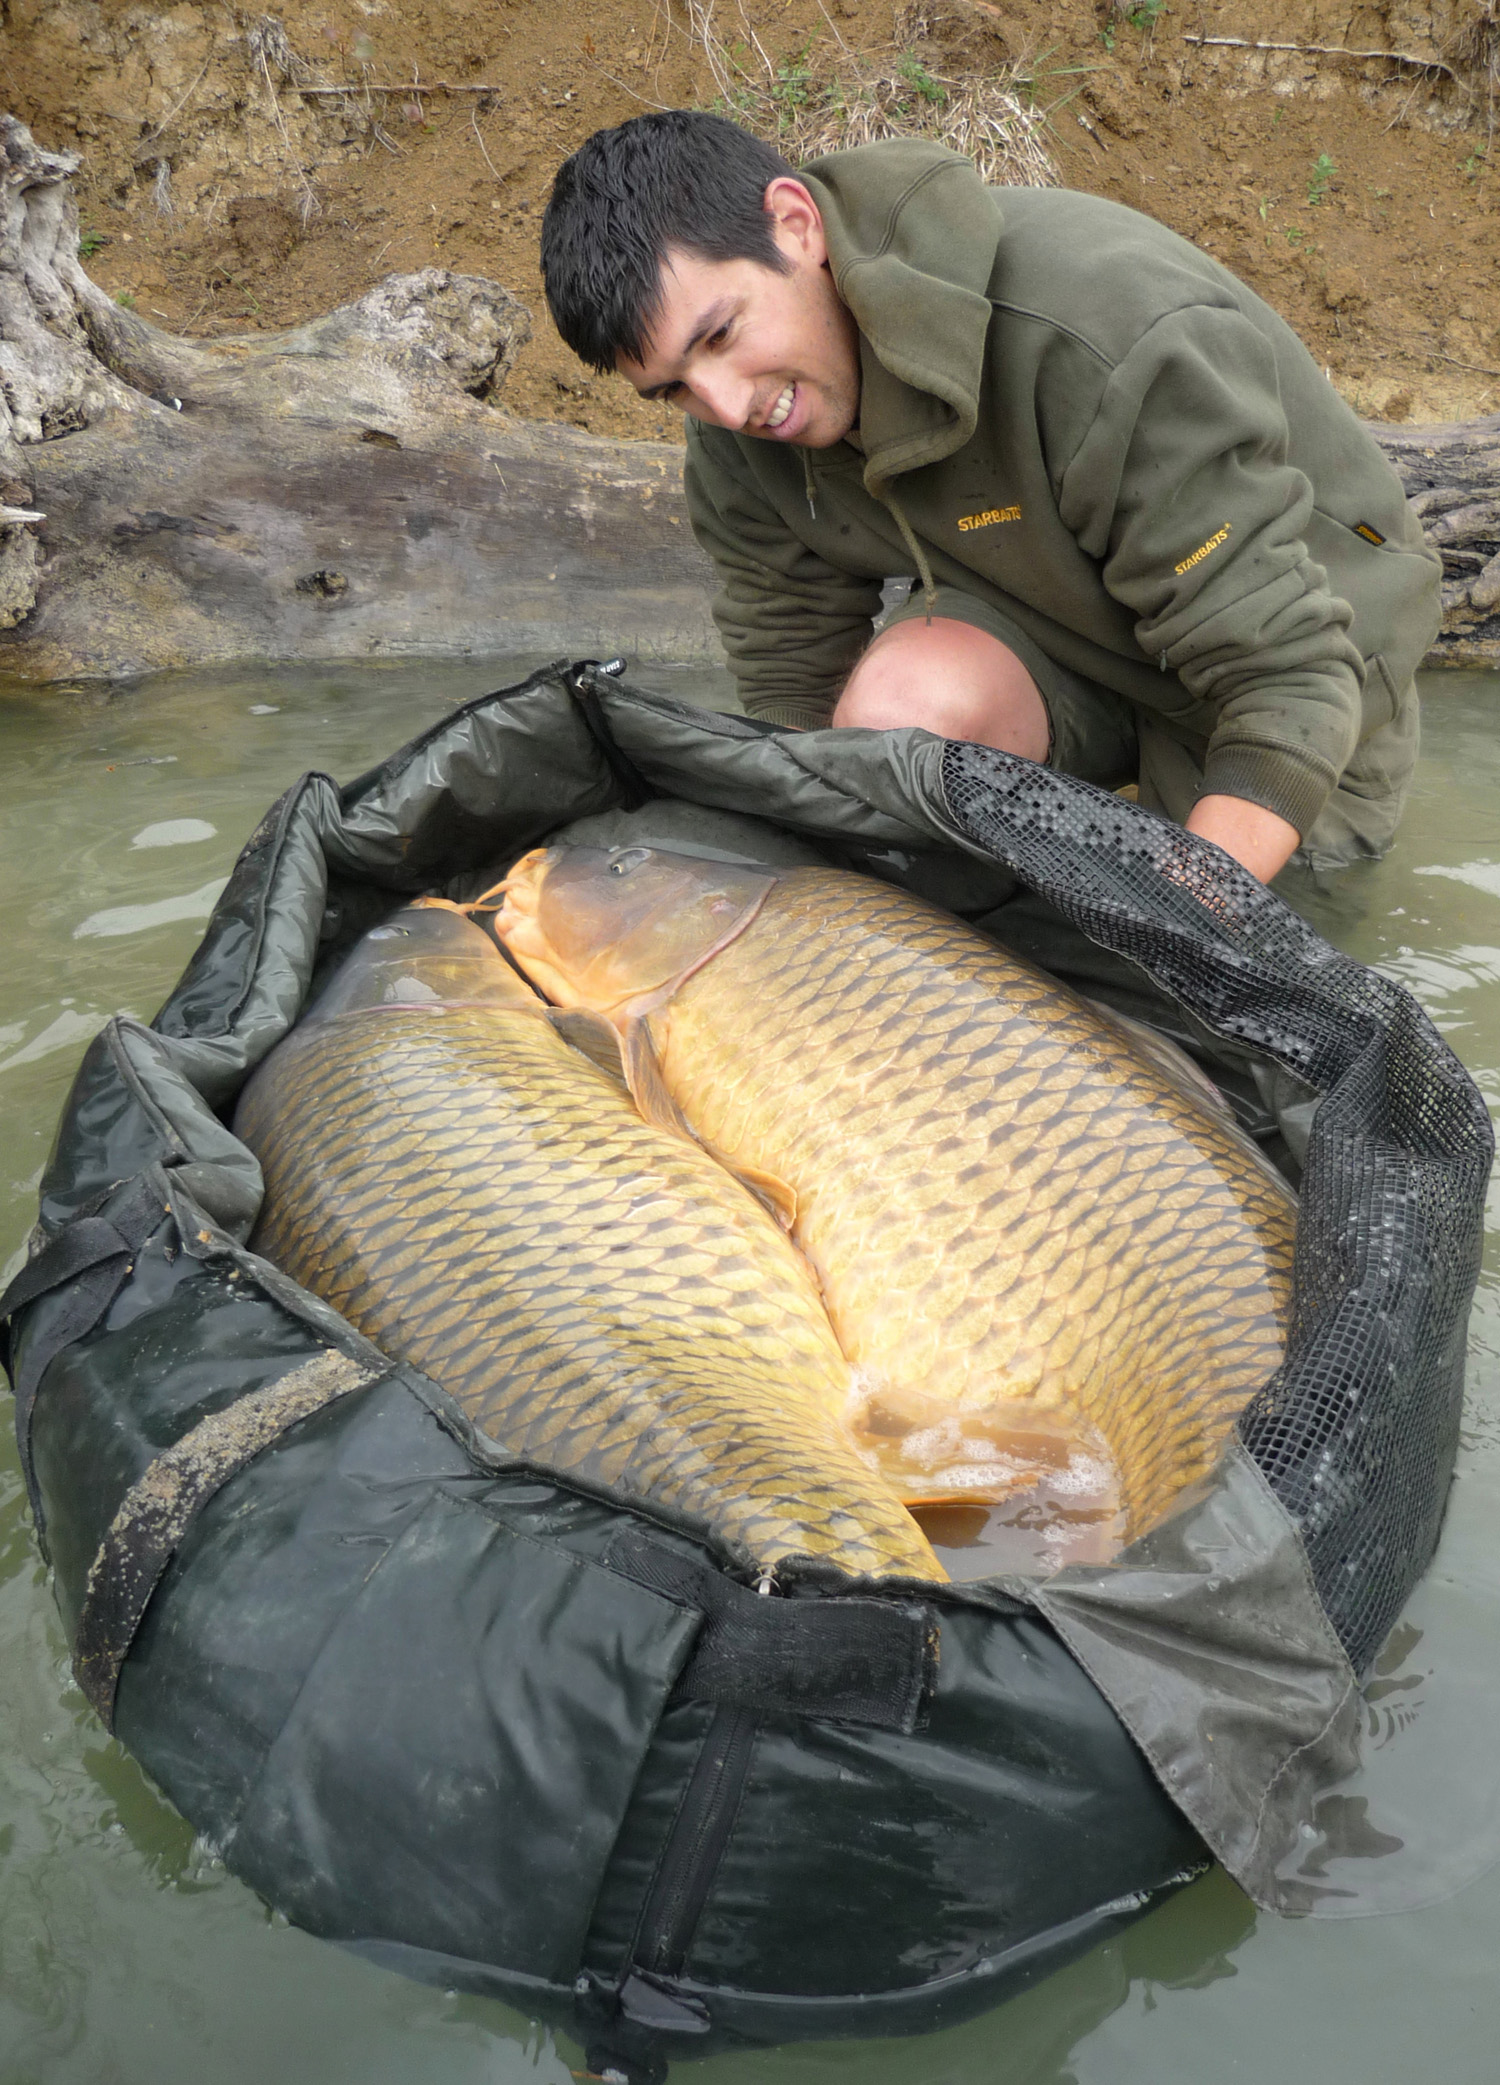 http://www.starbaits.com/fichiers/images/team/gallery/DUCERE_Cedric/5-DUCERE-CEDRIC.jpg